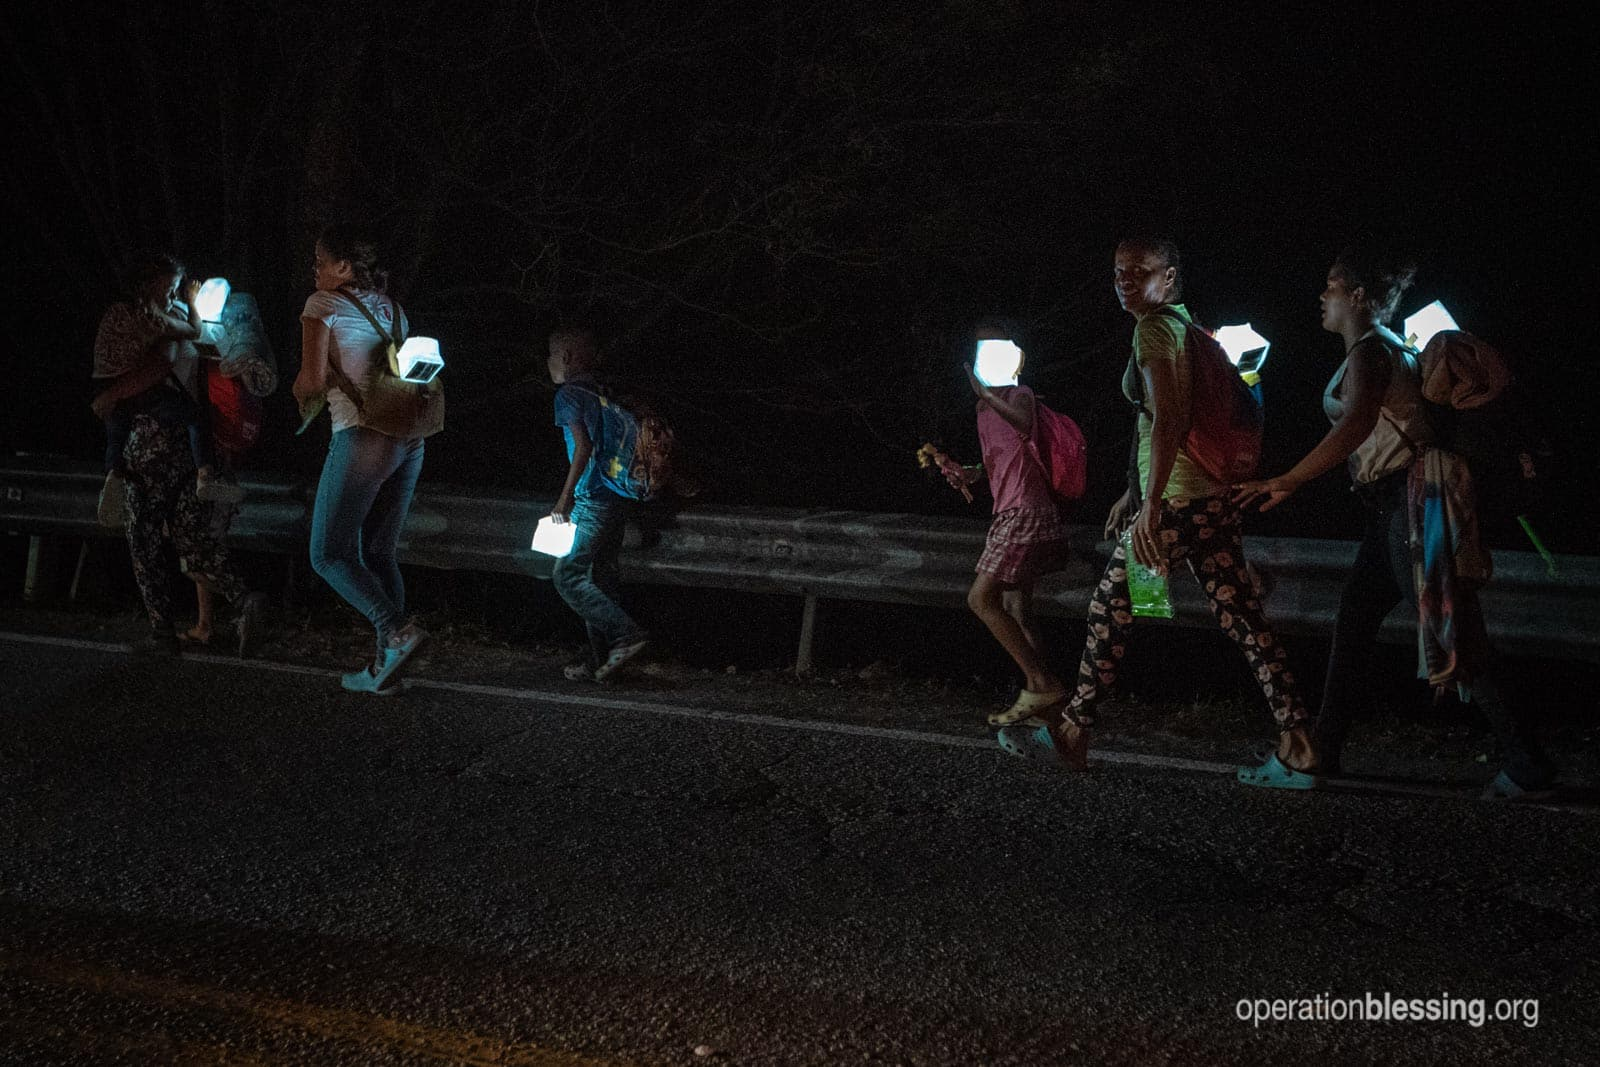 Venezuelan refugees walk on a highway in the dark with solar lamps from Operation Blessing.